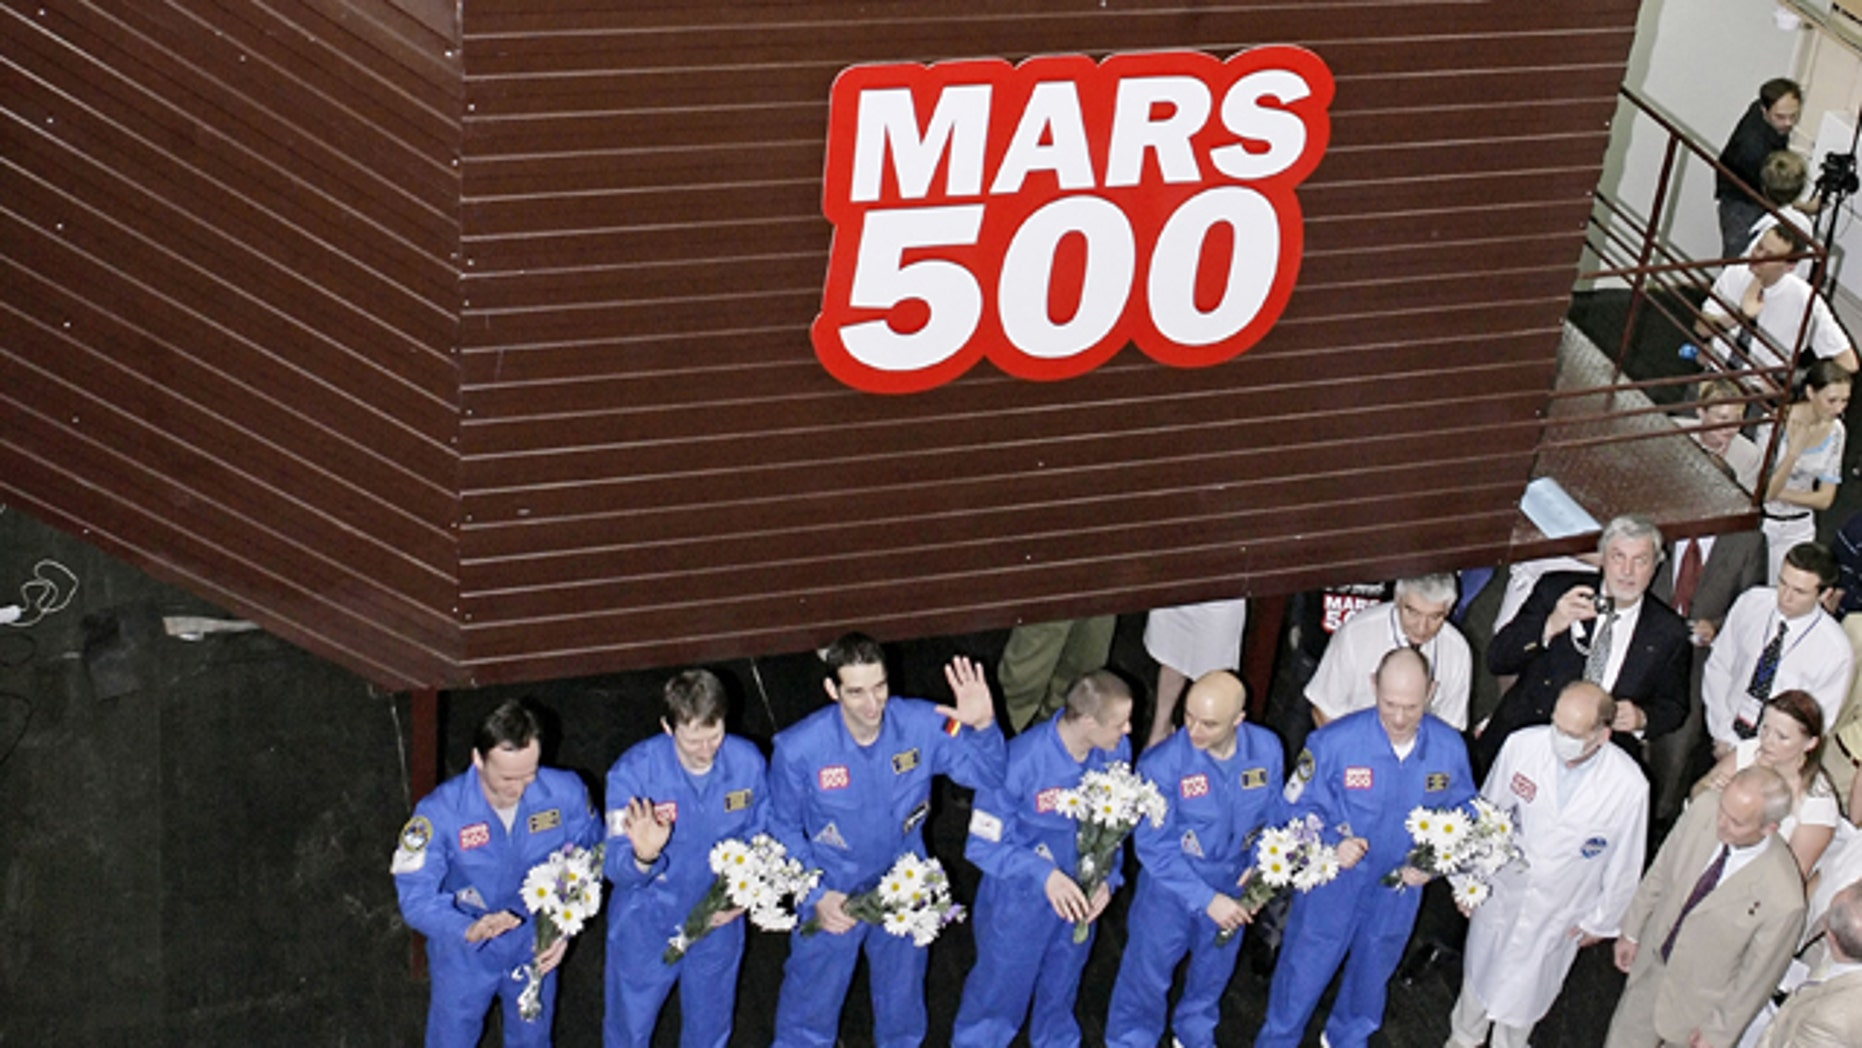 The team of researchers is greeted after ending a three-month simulation mission to Mars at a Moscow research facility, Russia. Another team of researchers will launch a longer, 520-day simulation of Mars mission at the same facility in Moscow on Thursday June 3, 2010.